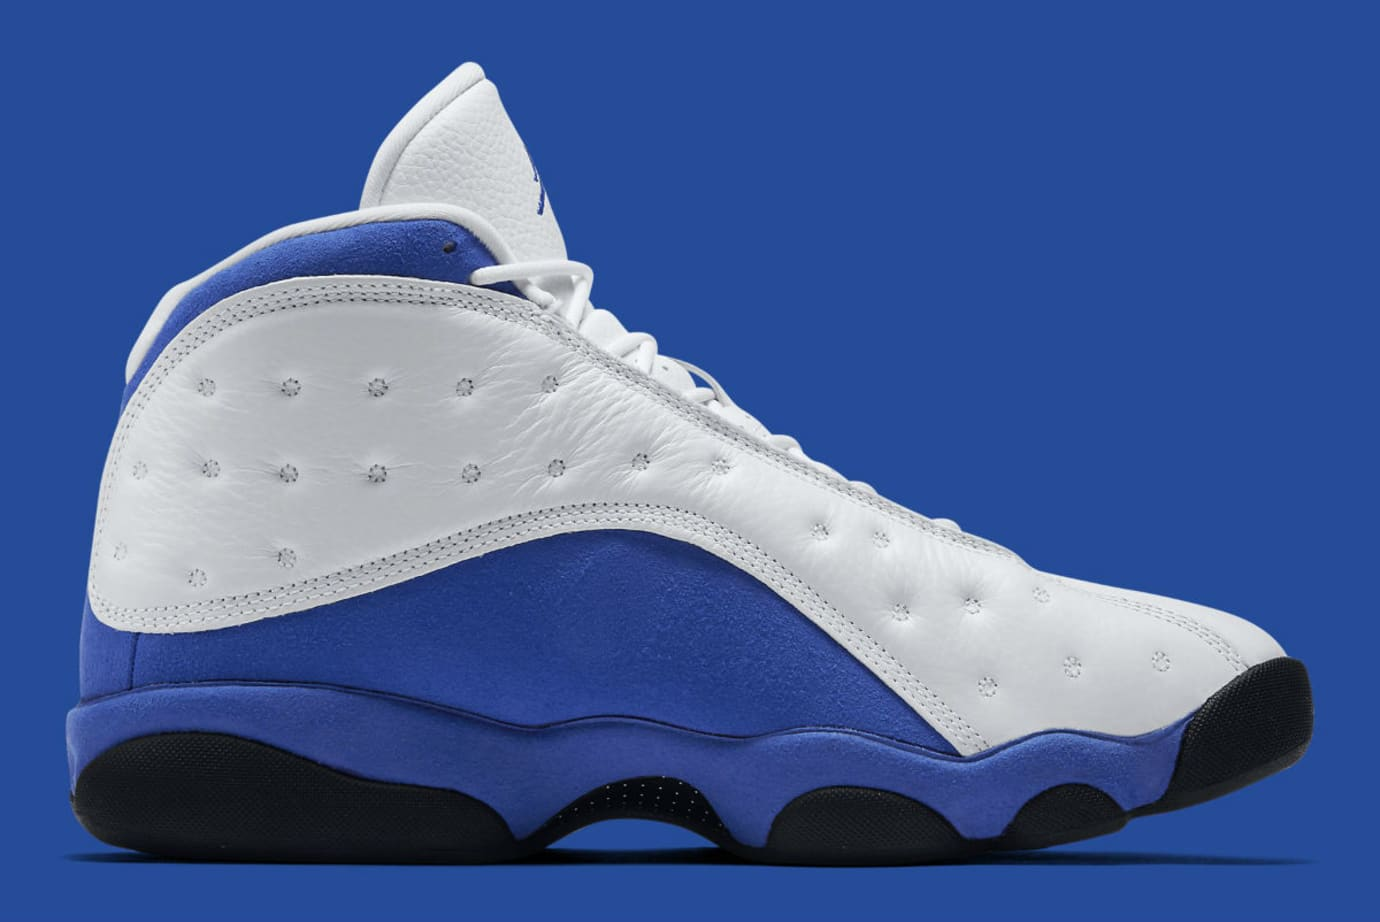 094348170b83 Air Jordan 13 XIII Hyper Royal Q-Rich Release Date 414571-117 Medial